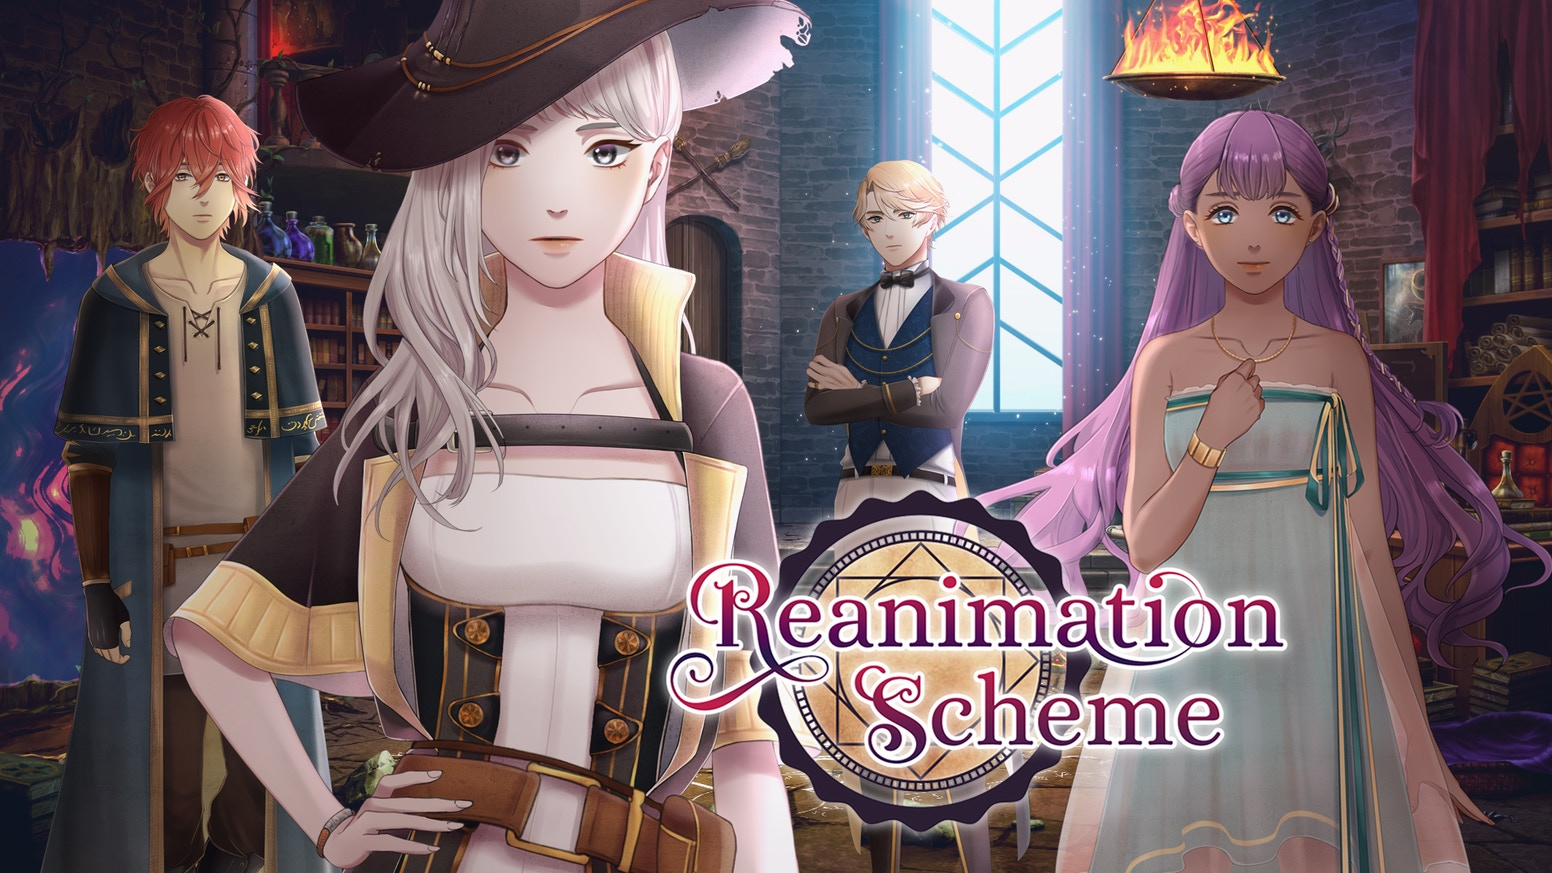 An otome visual novel. Play as a necromancer, fail to summon the spirits of the dead, unravel mysteries — and maybe fall in love!